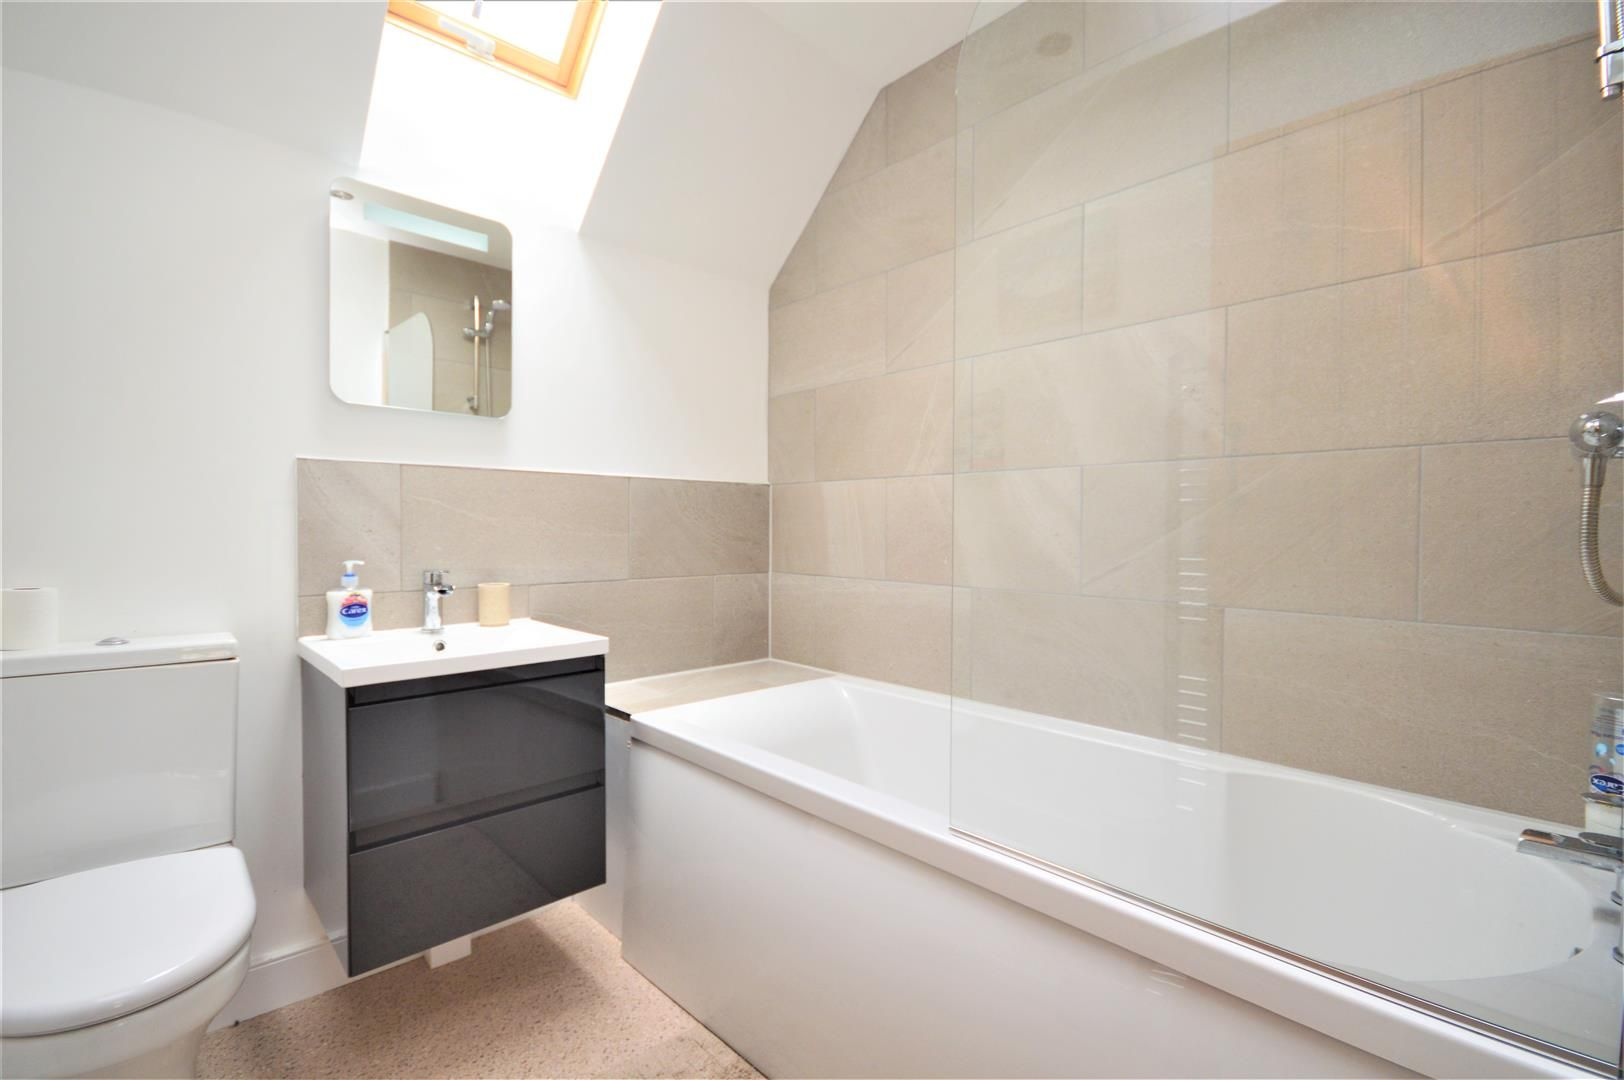 4 bed detached for sale in Marden  - Property Image 19